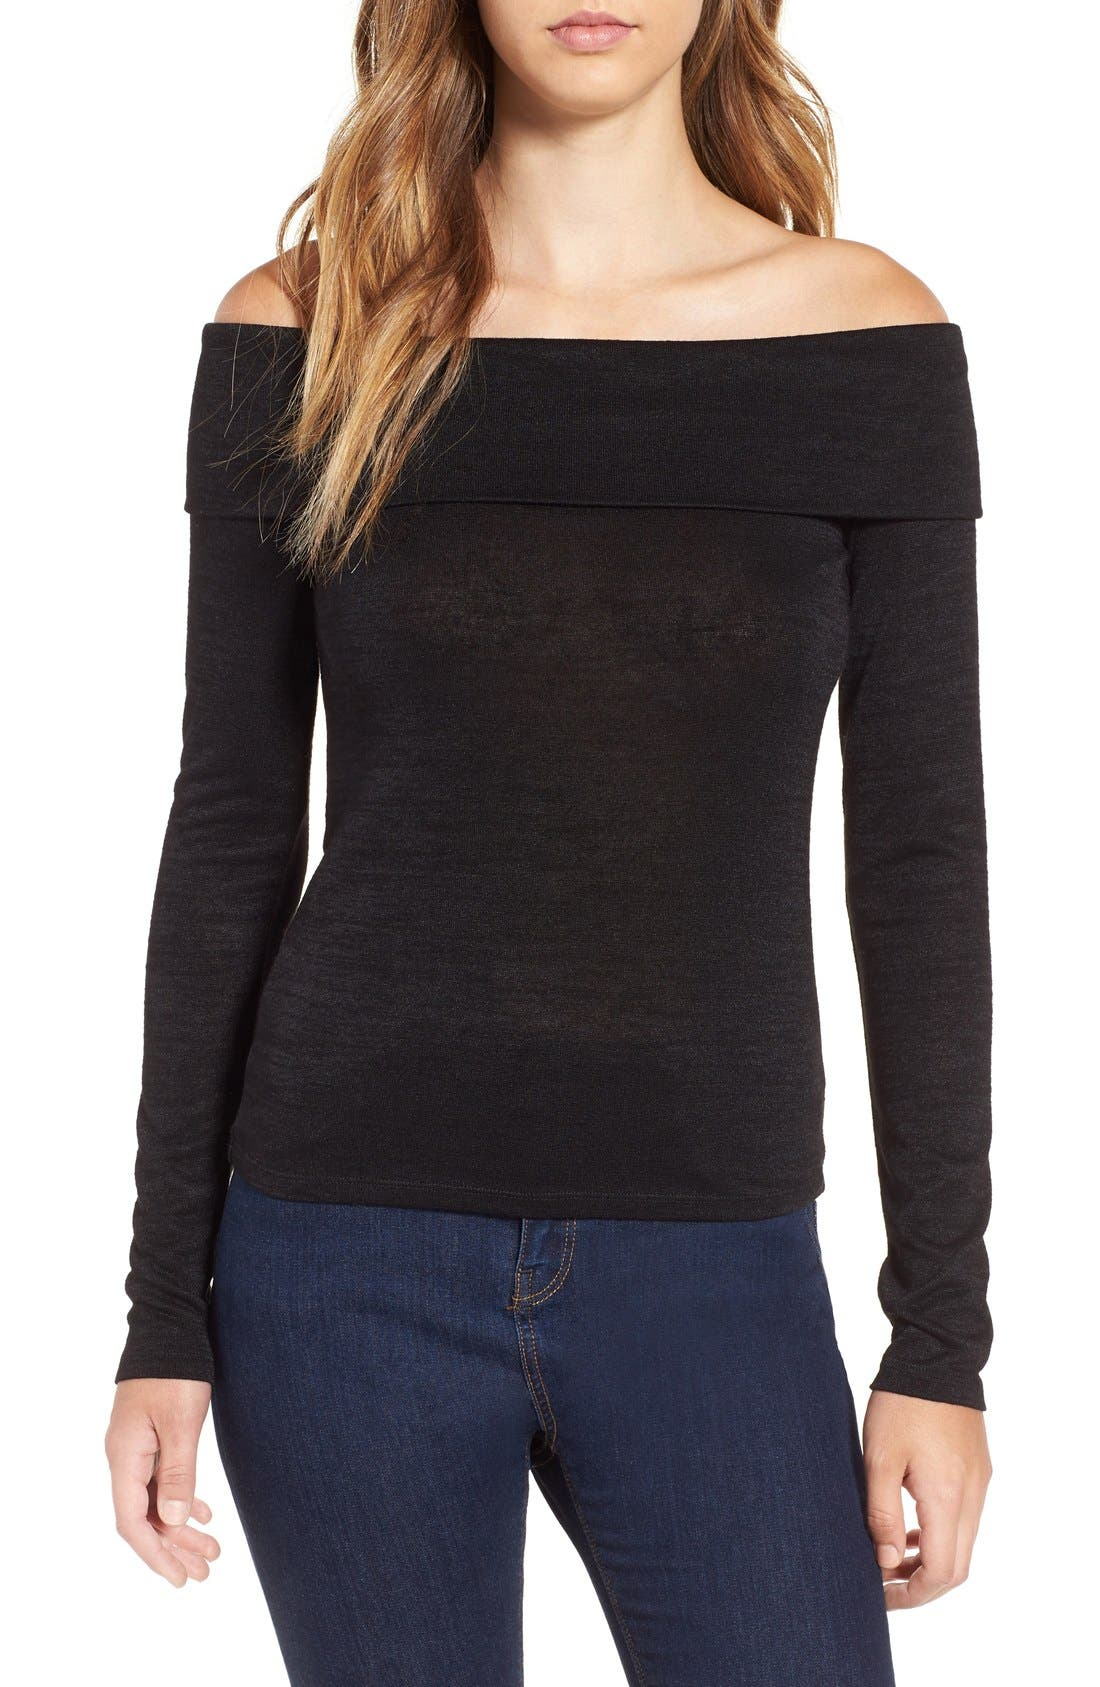 LEITH Foldover Off the Shoulder Top, Main, color, 001